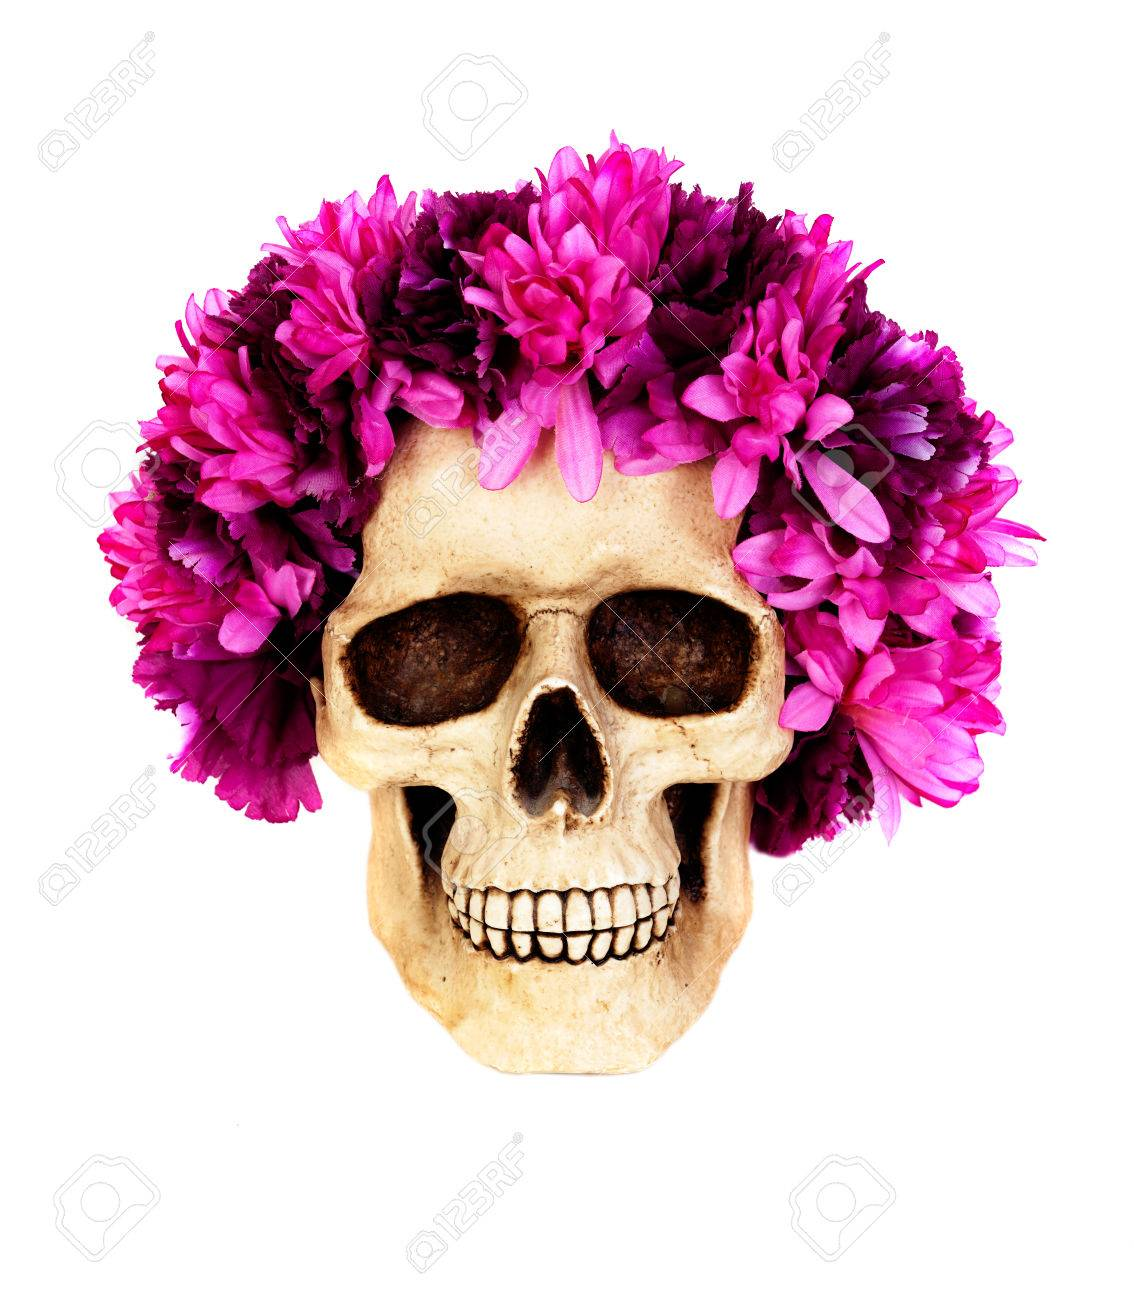 Skull with a wreath of pink flower isolated on a white background skull with a wreath of pink flower isolated on a white background stock photo 87417780 mightylinksfo